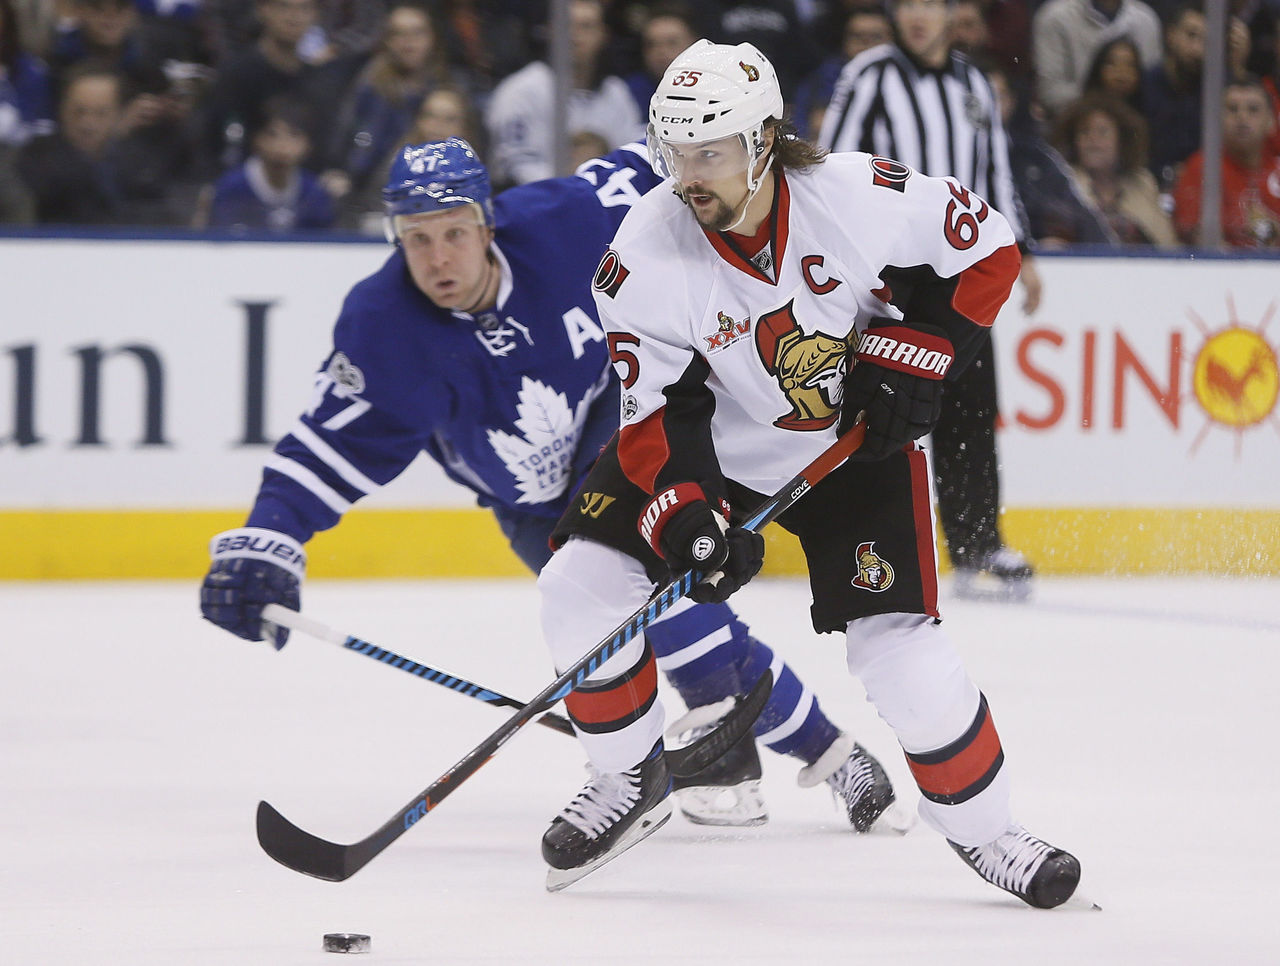 Cropped 2017 01 22t011928z 1374798124 nocid rtrmadp 3 nhl ottawa senators at toronto maple leafs